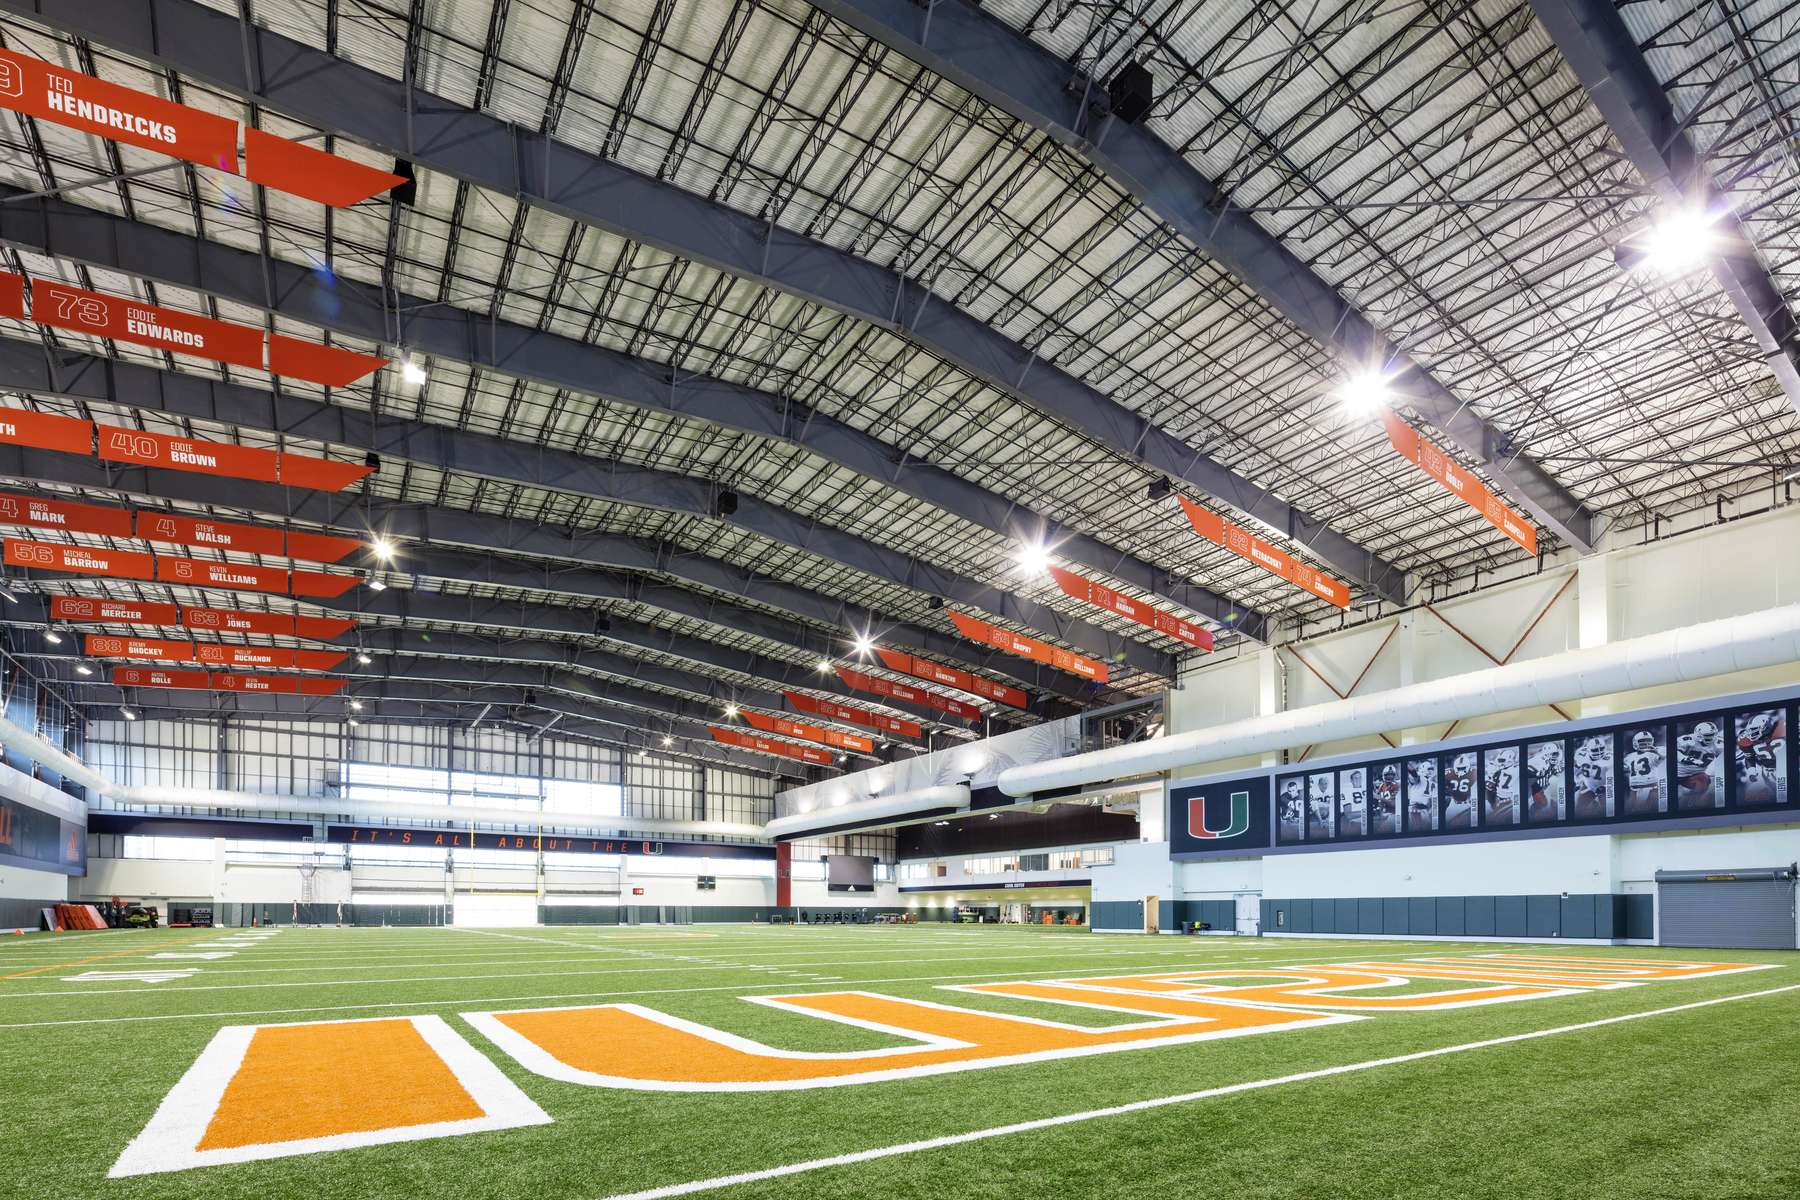 University of Miami Football Facility